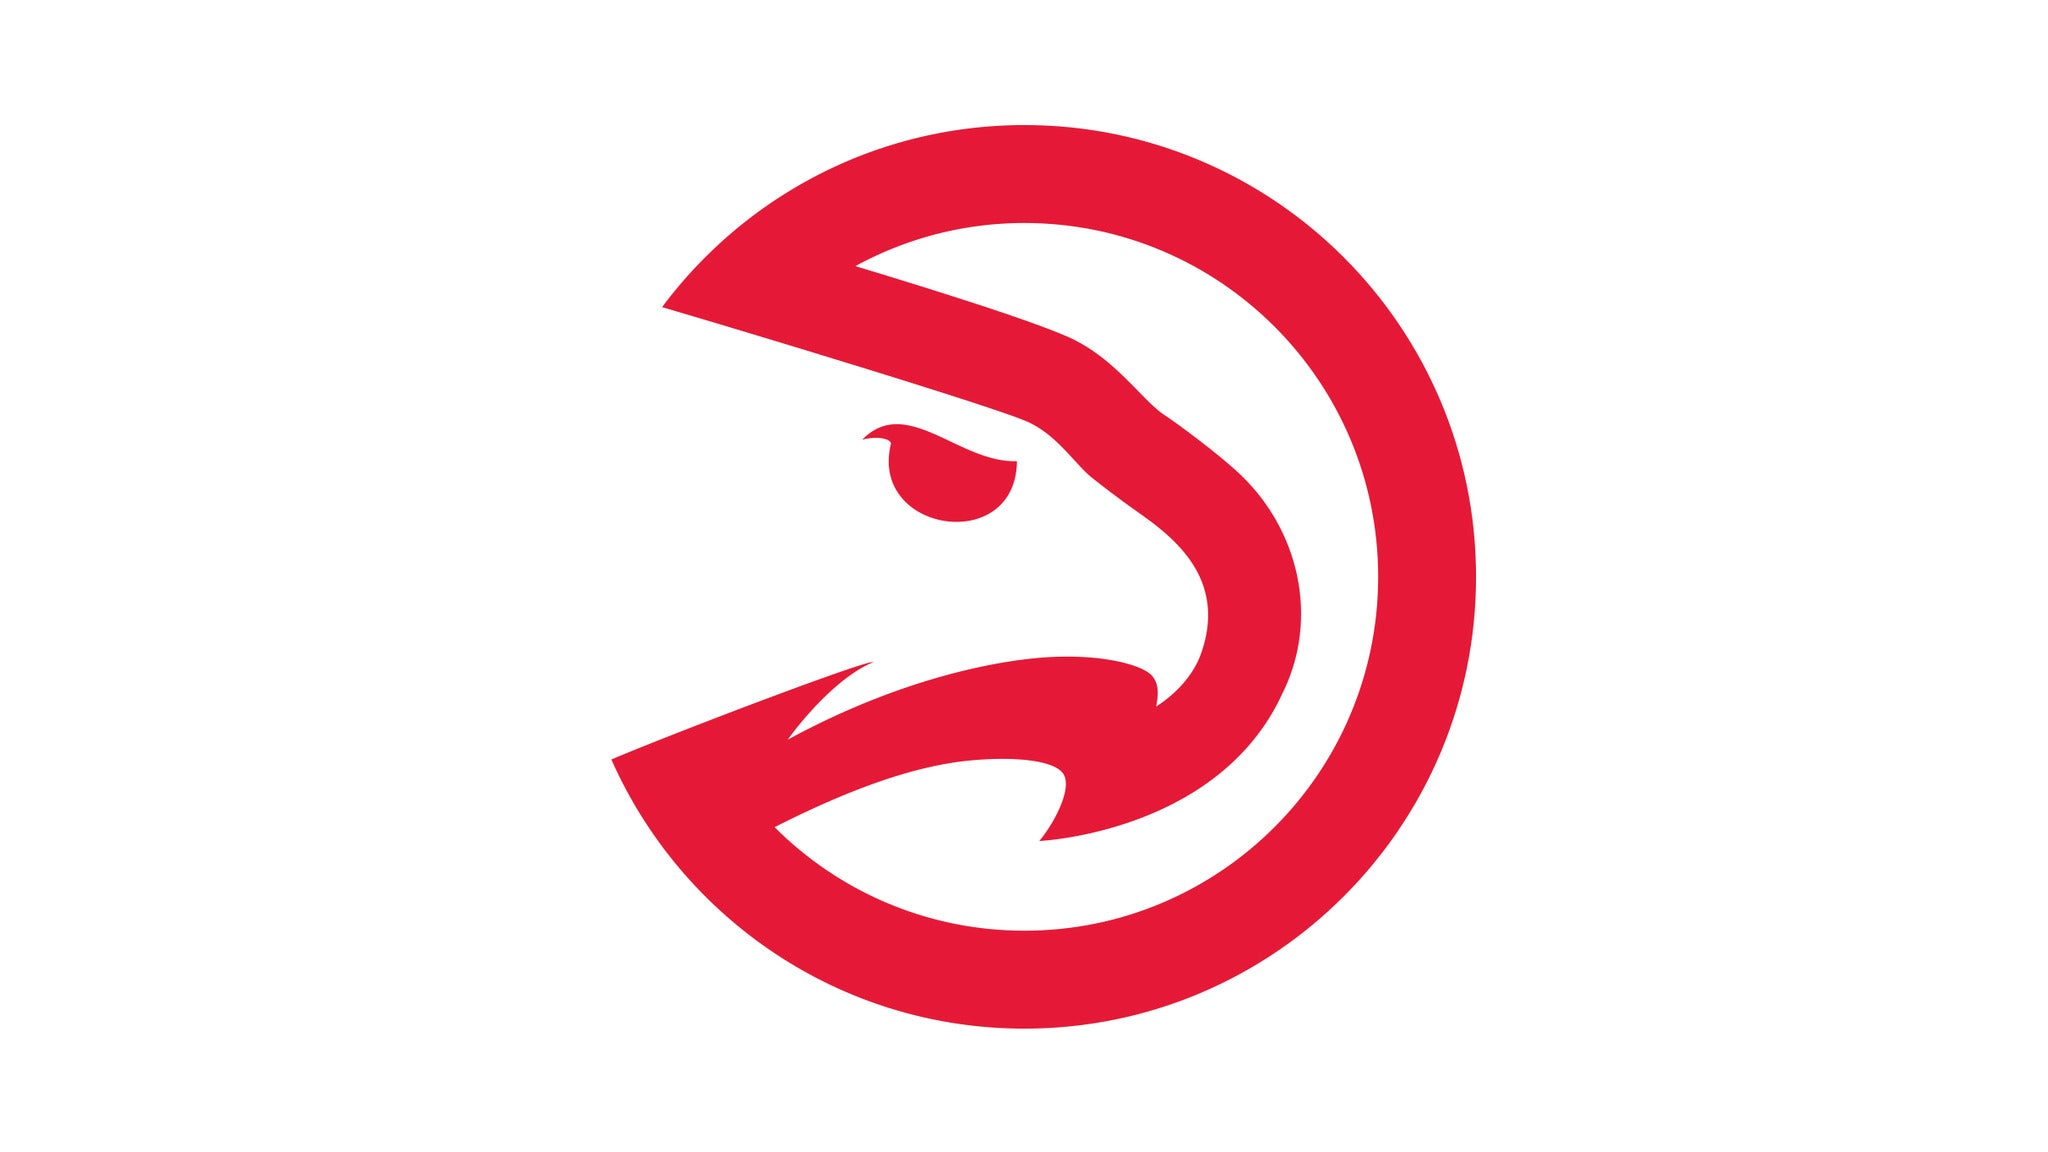 Atlanta Hawks vs. Boston Celtics at Philips Arena